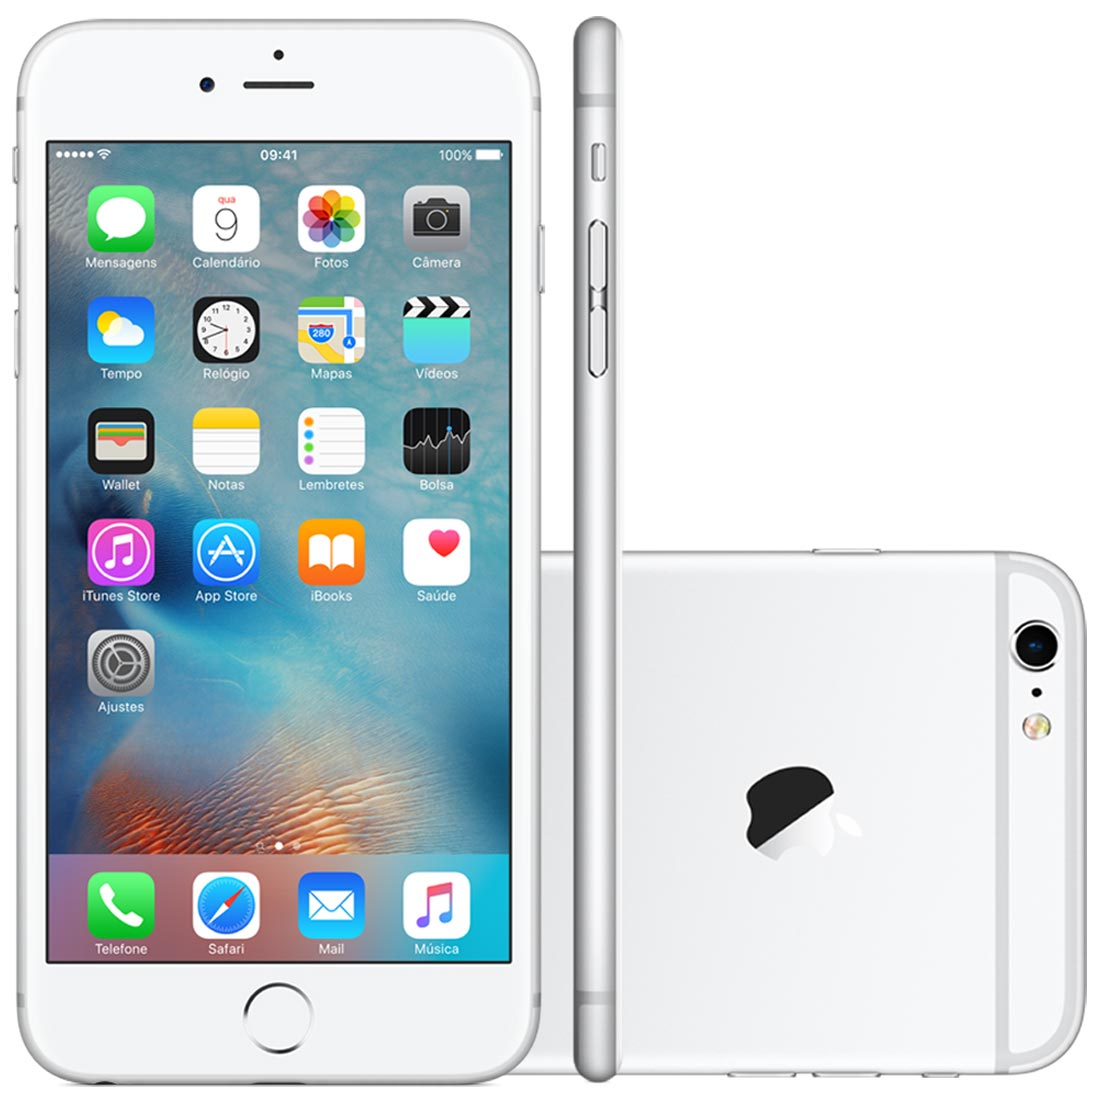 bb7e253c0 iPhone 6S Plus Apple 16GB Prata 4G iOS 9 3D Touch Chip A9 e Câmera ...